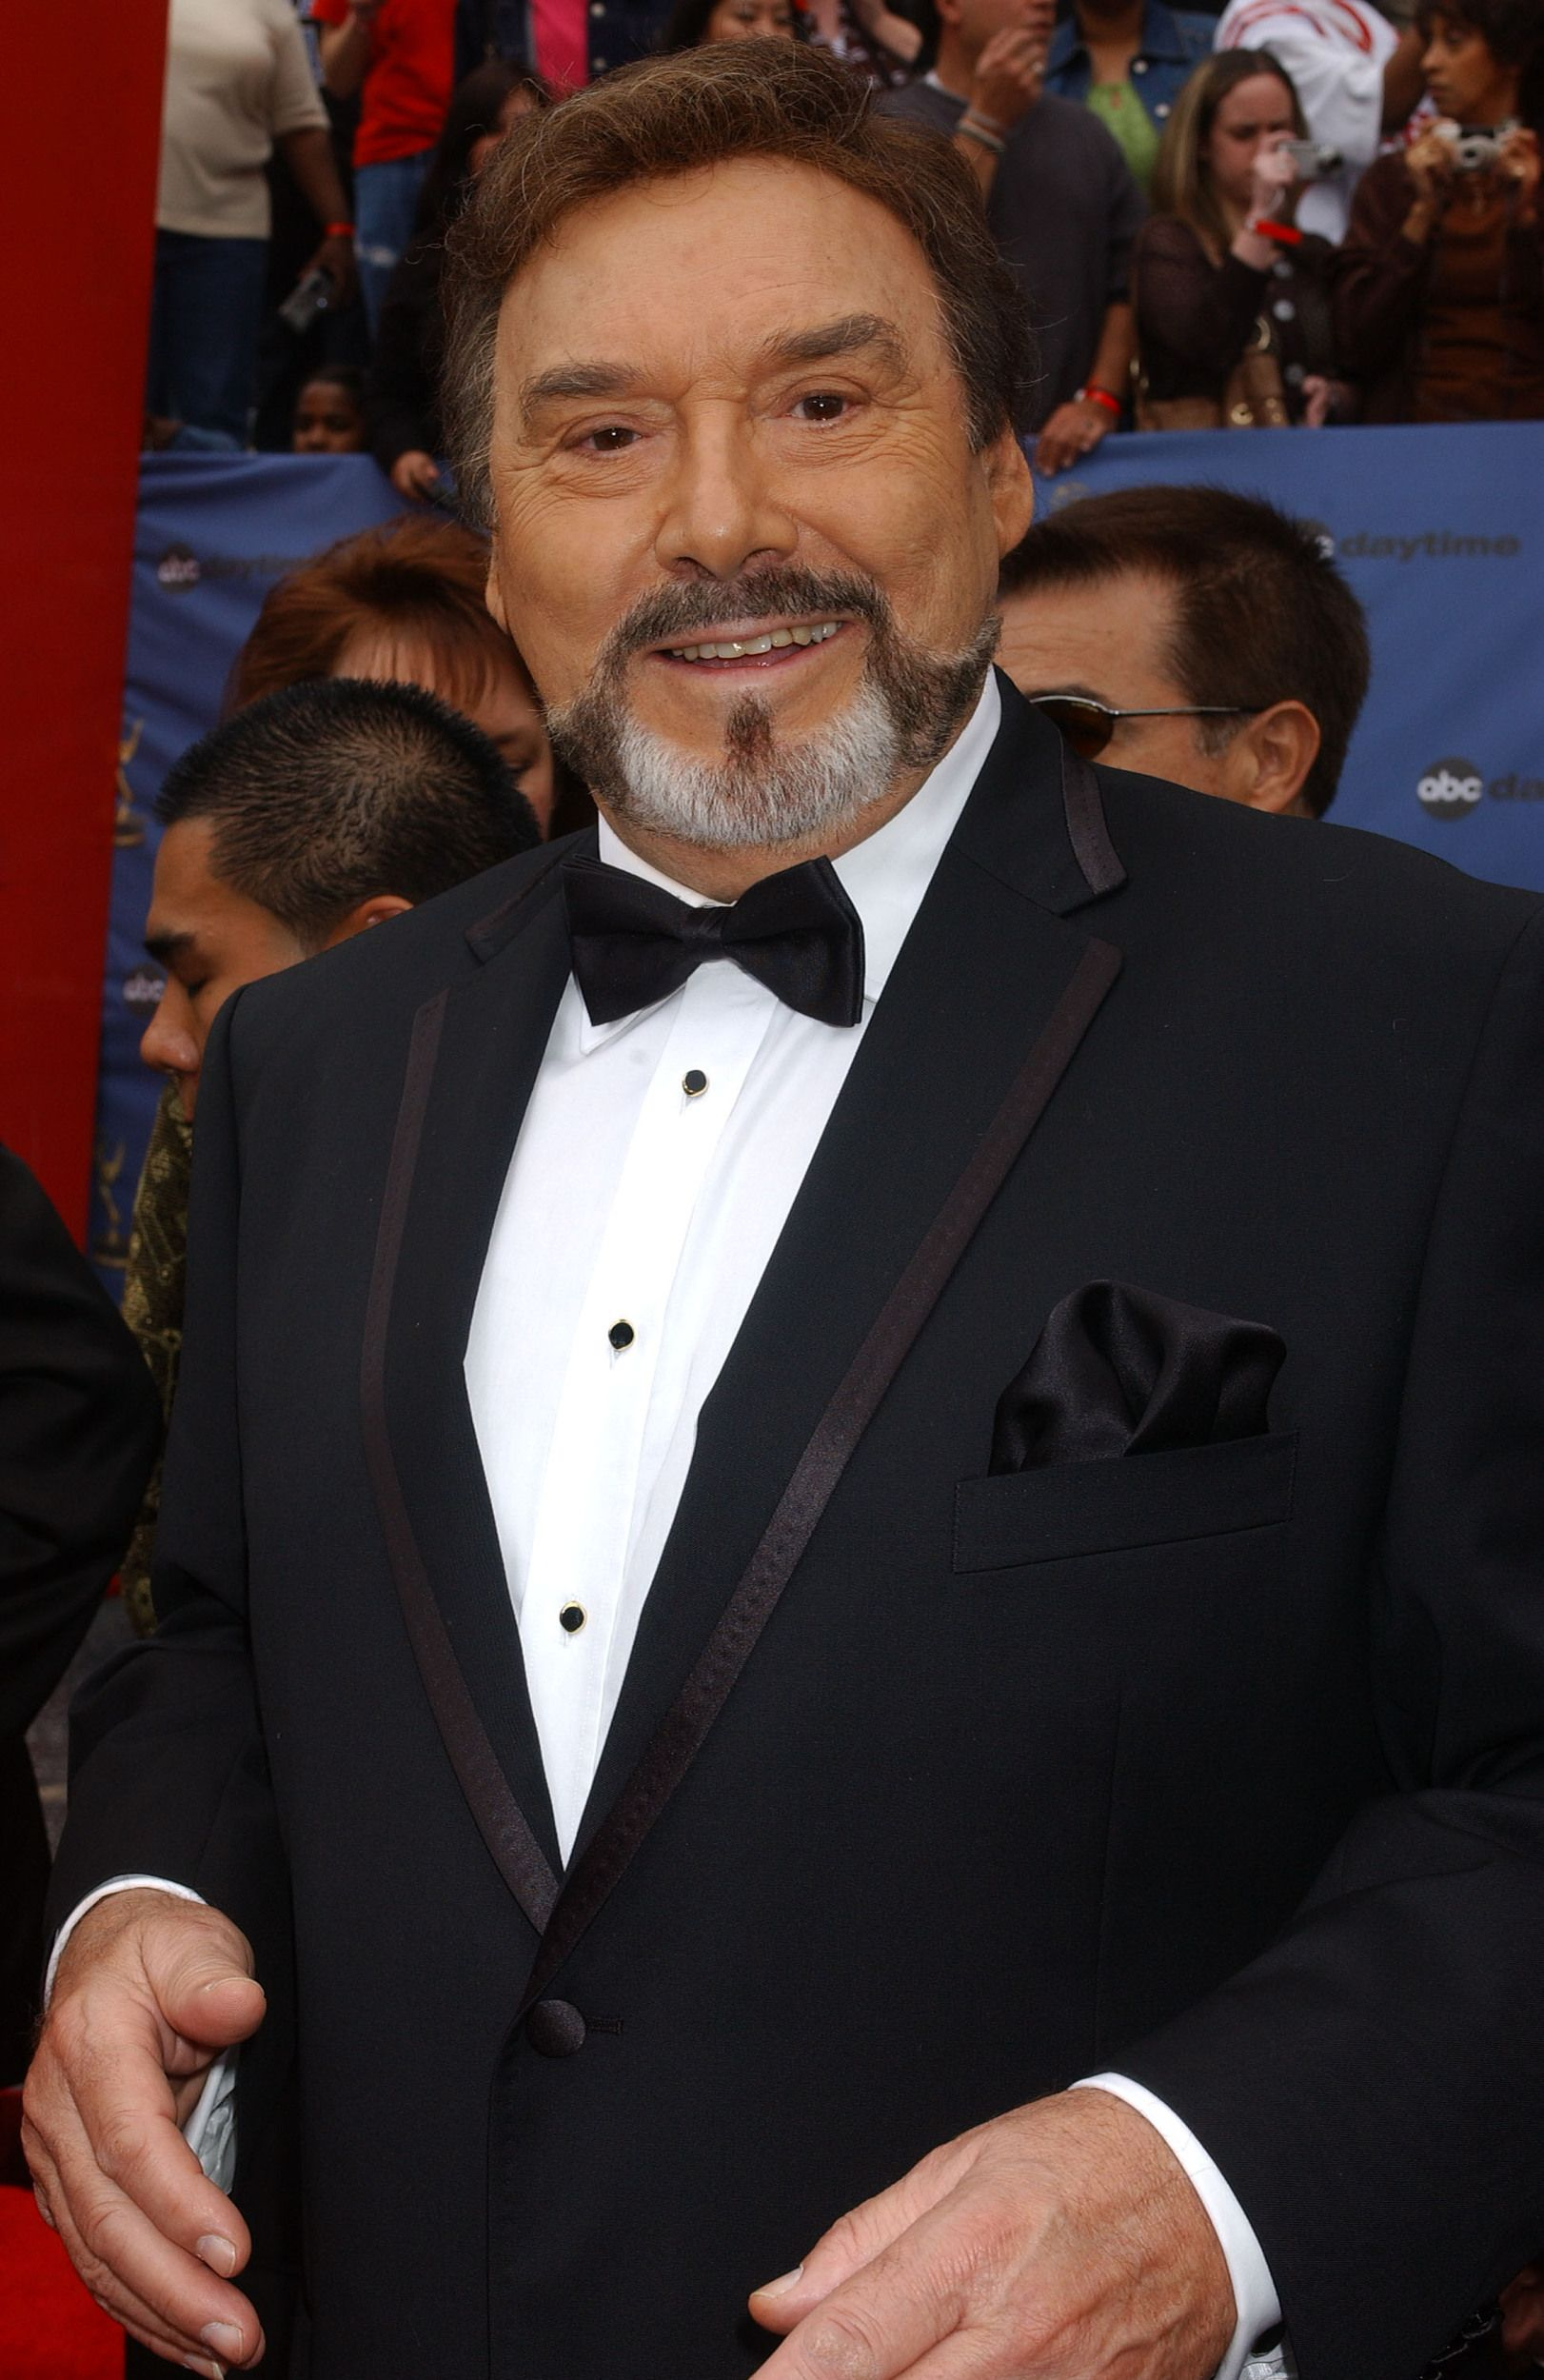 Joseph Mascolo during 33rd Annual Daytime Emmy Awards - Arrivals at Kodak Theatre in Hollywood, CA, United States. (Photo by Albert L. Ortega/WireImage) via @AOL_Lifestyle Read more: http://www.aol.com/article/entertainment/2016/12/09/joseph-mascolo-days-of-our-lives-dead-at-87/21624570/?a_dgi=aolshare_pinterest#fullscreen